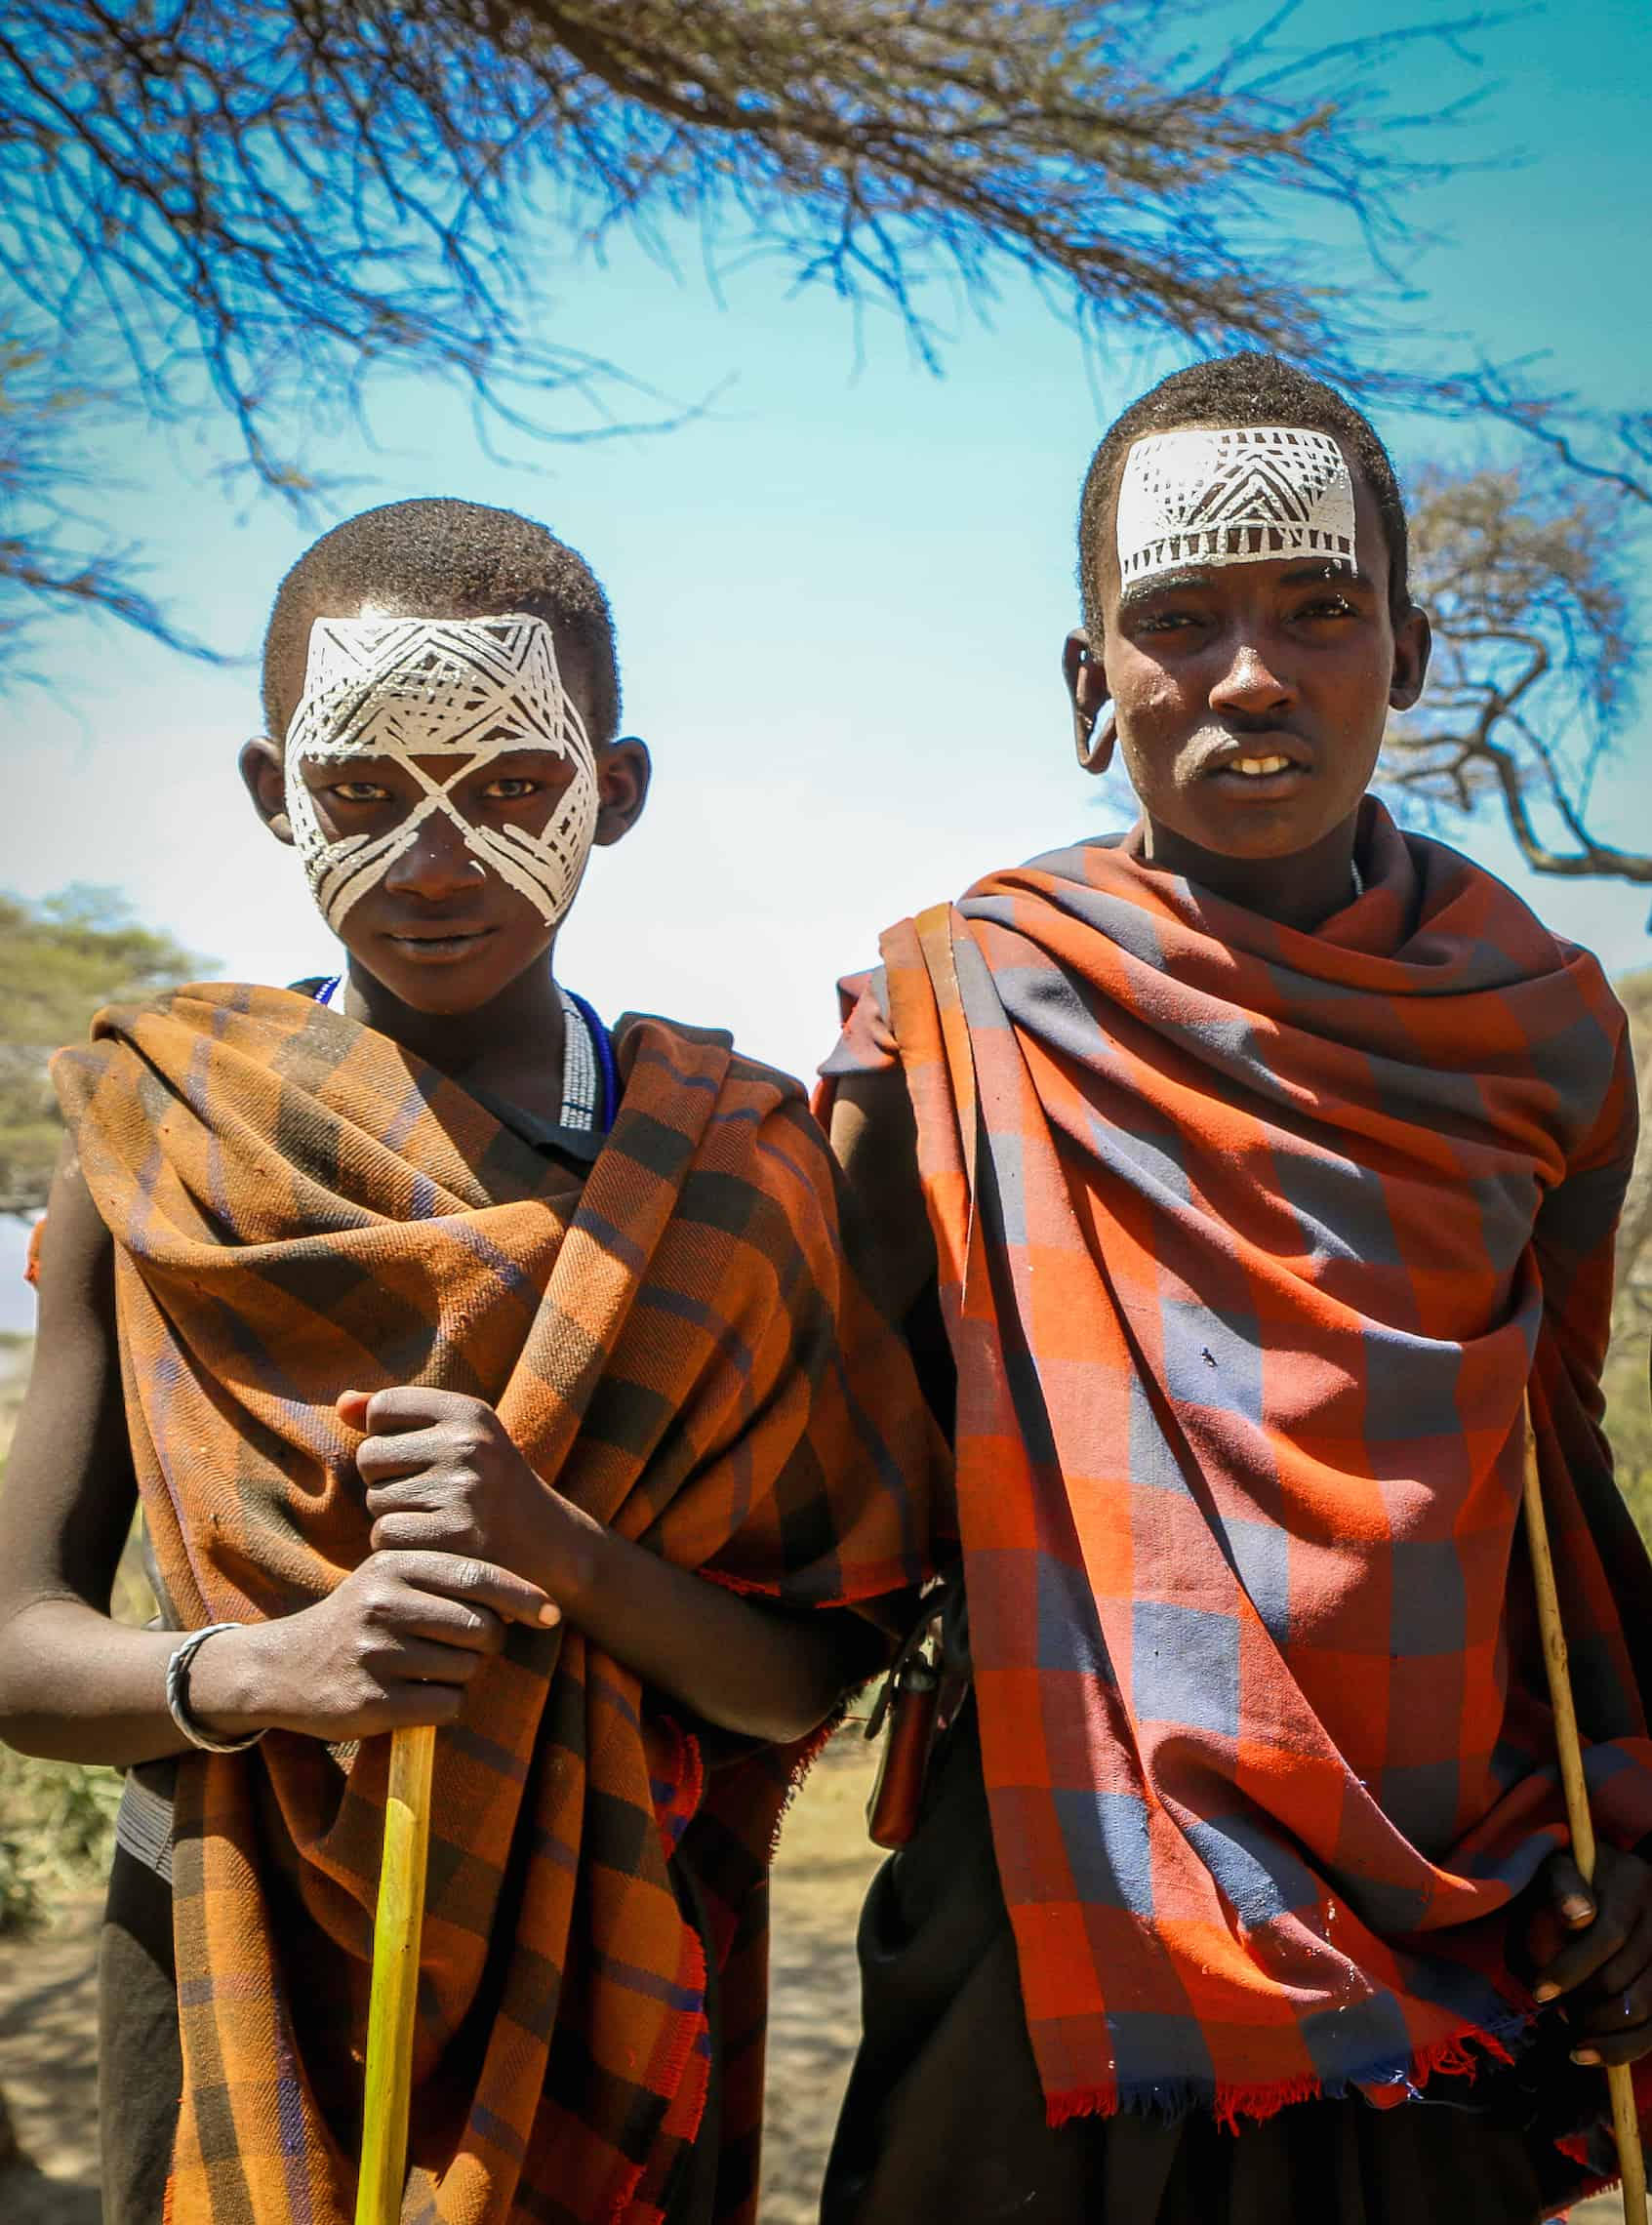 Adolescent Maasai Boys, known as Moran